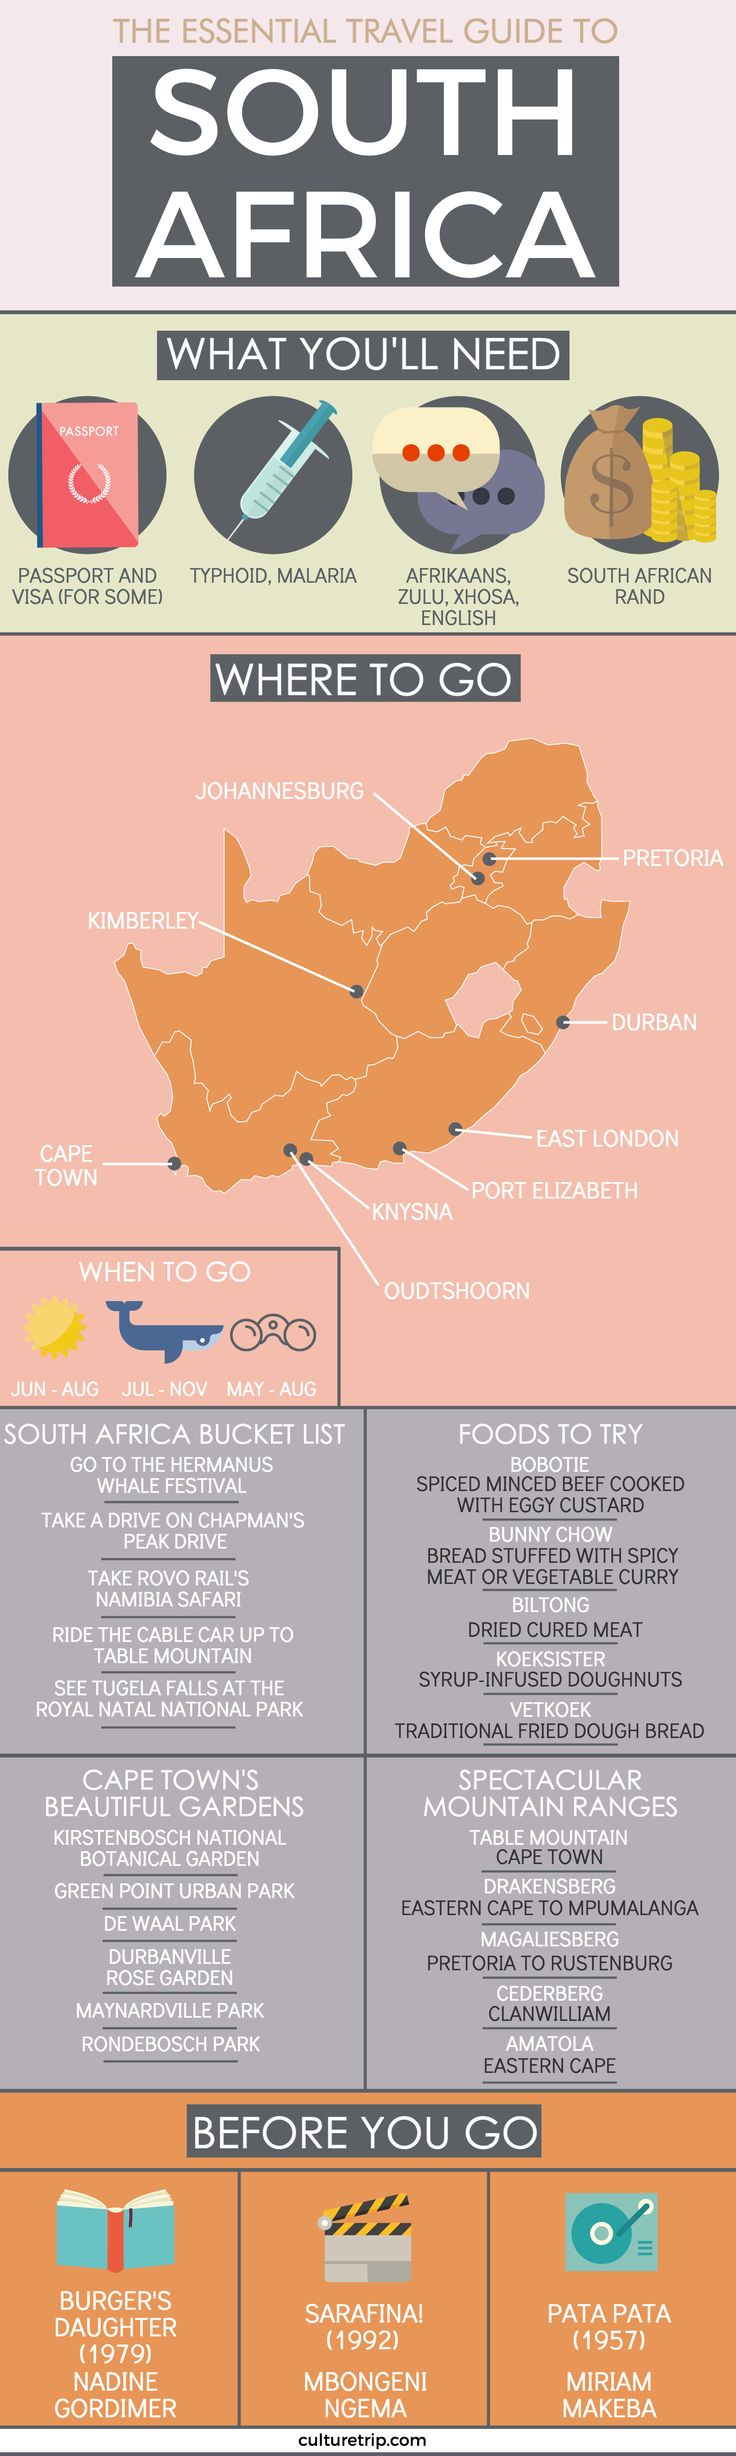 The Ultimate Travel Guide To South Africa